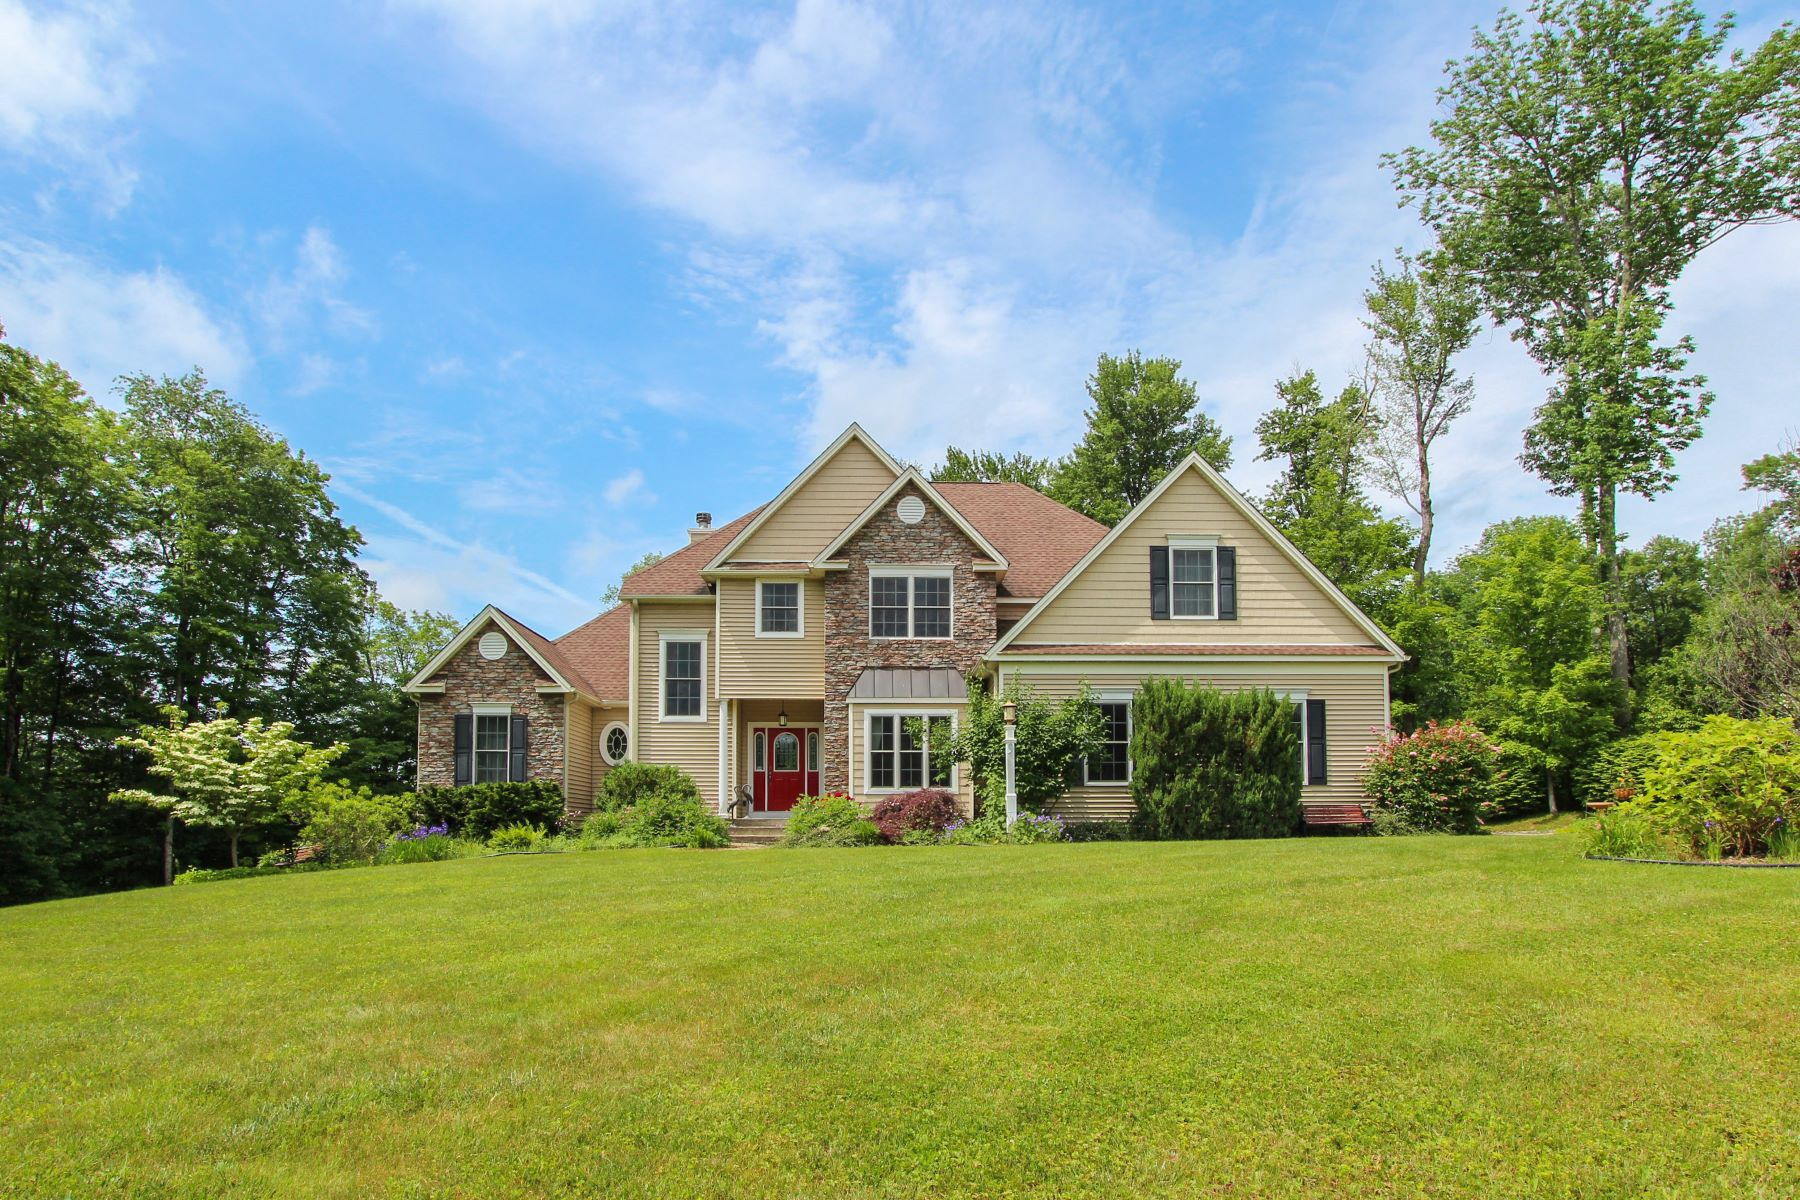 واحد منزل الأسرة للـ Sale في Timberlake Colonial with Seasonal Views! 9 Falcon Ridge Road, Torrington, Connecticut, 06790 United States